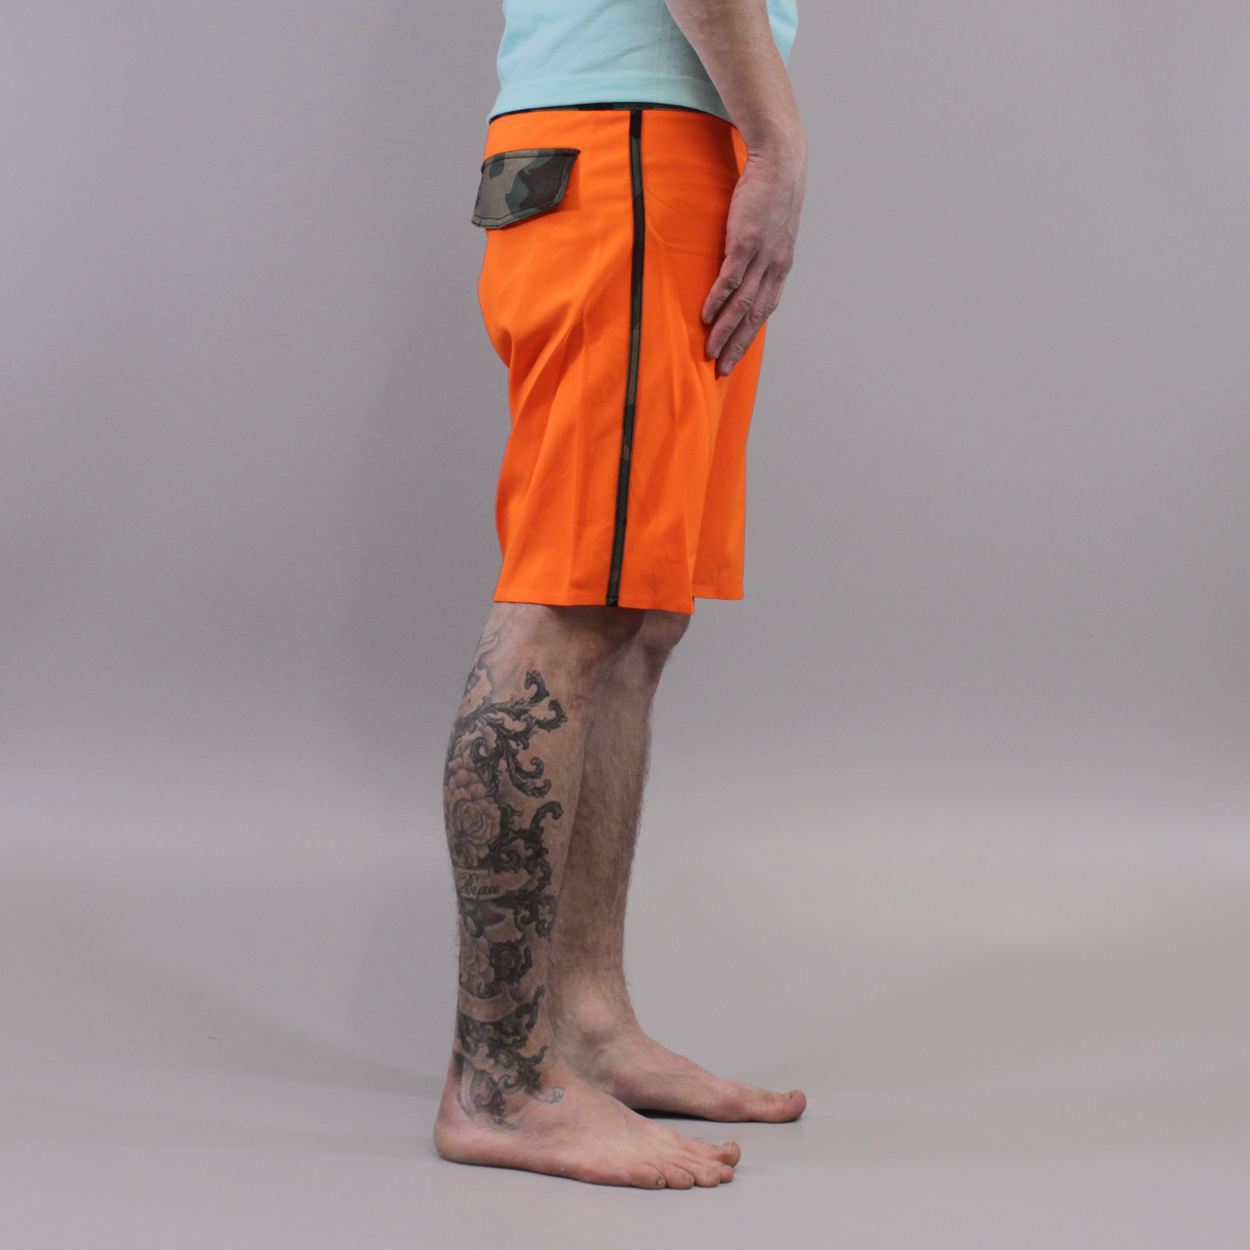 732869f657 Be ready to look cool and to be seen in these orange boardshorts with  camouflage waistband. Fox